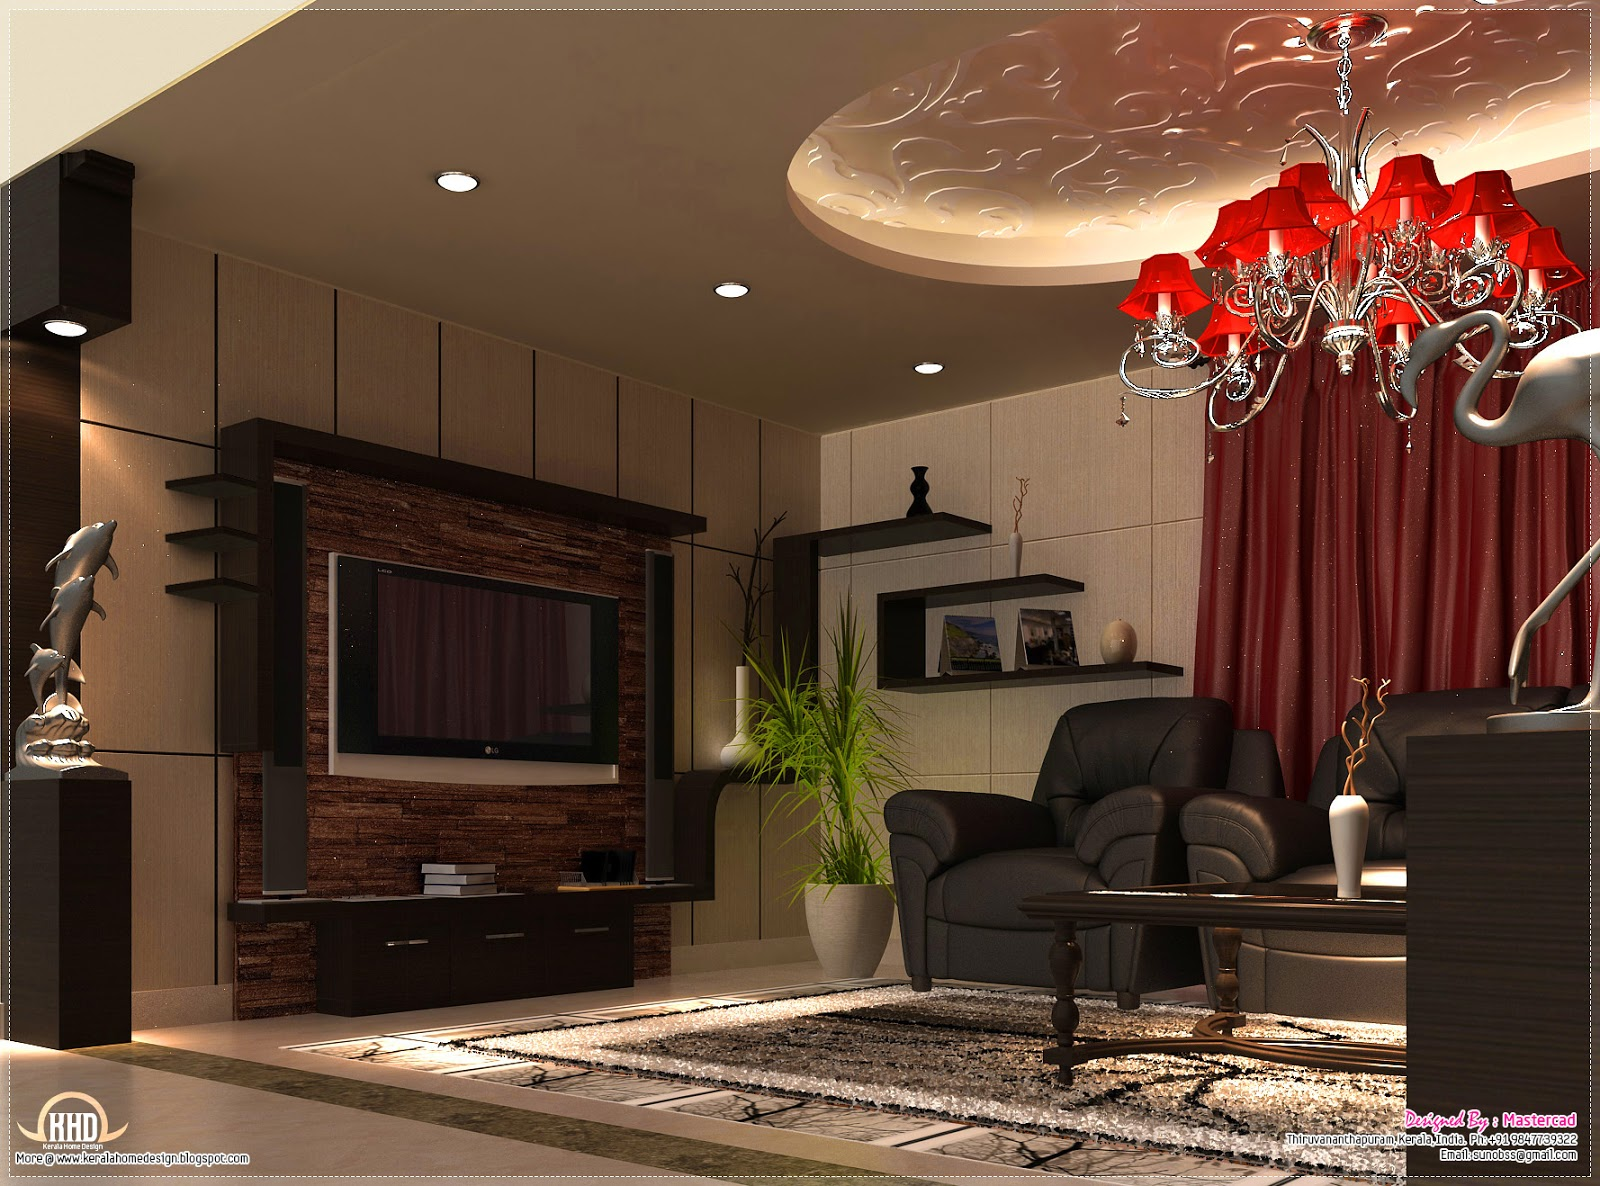 Interior design ideas kerala home design and floor plans for Latest interior design ideas